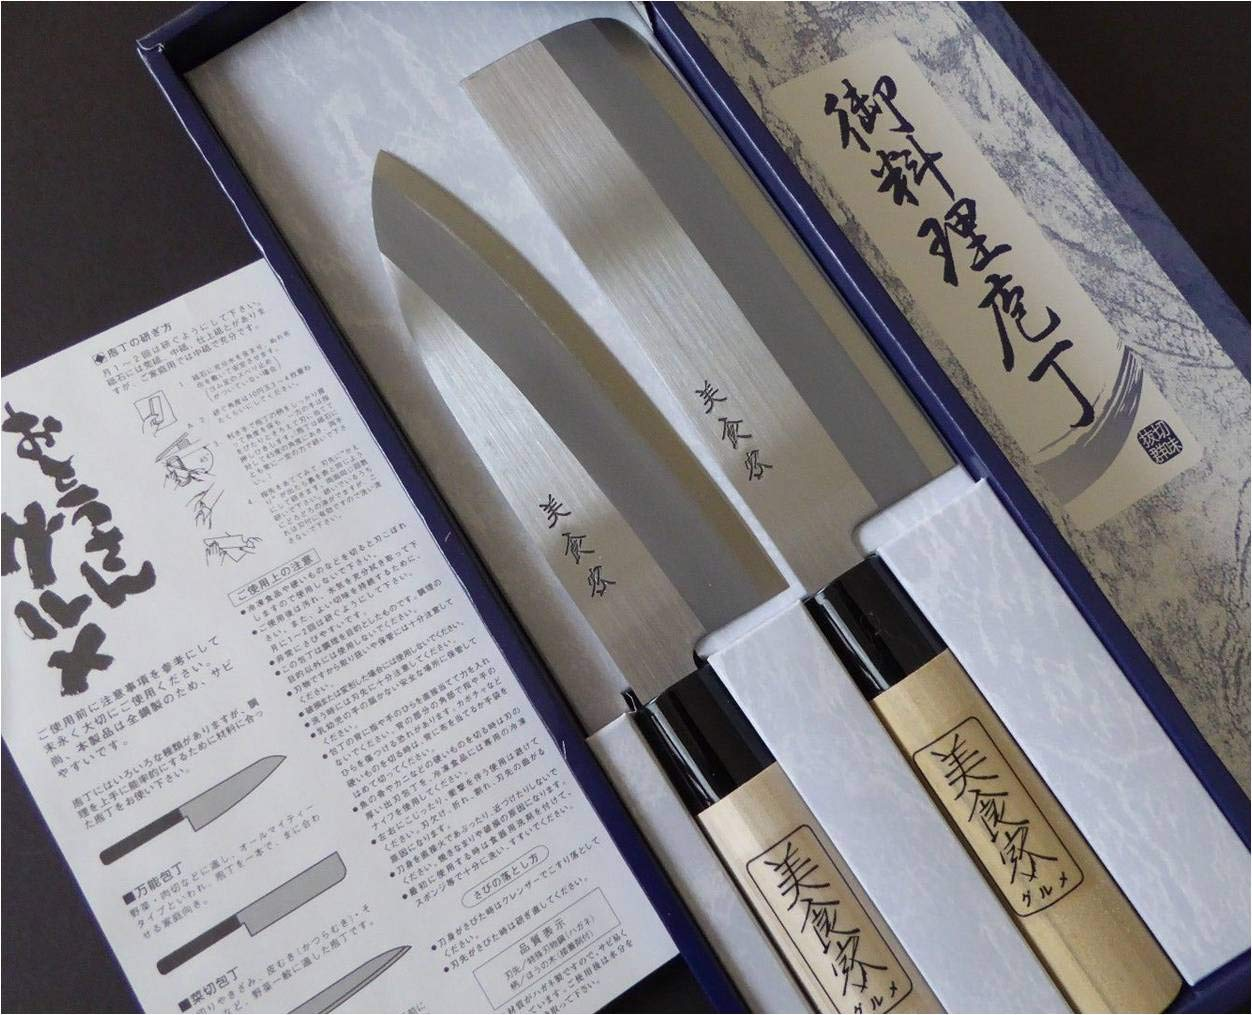 2 Pcs. Japanese Shimomura Hocho Kitchen Knife set/Made in Japan by YokohamaUSA (Image #1)